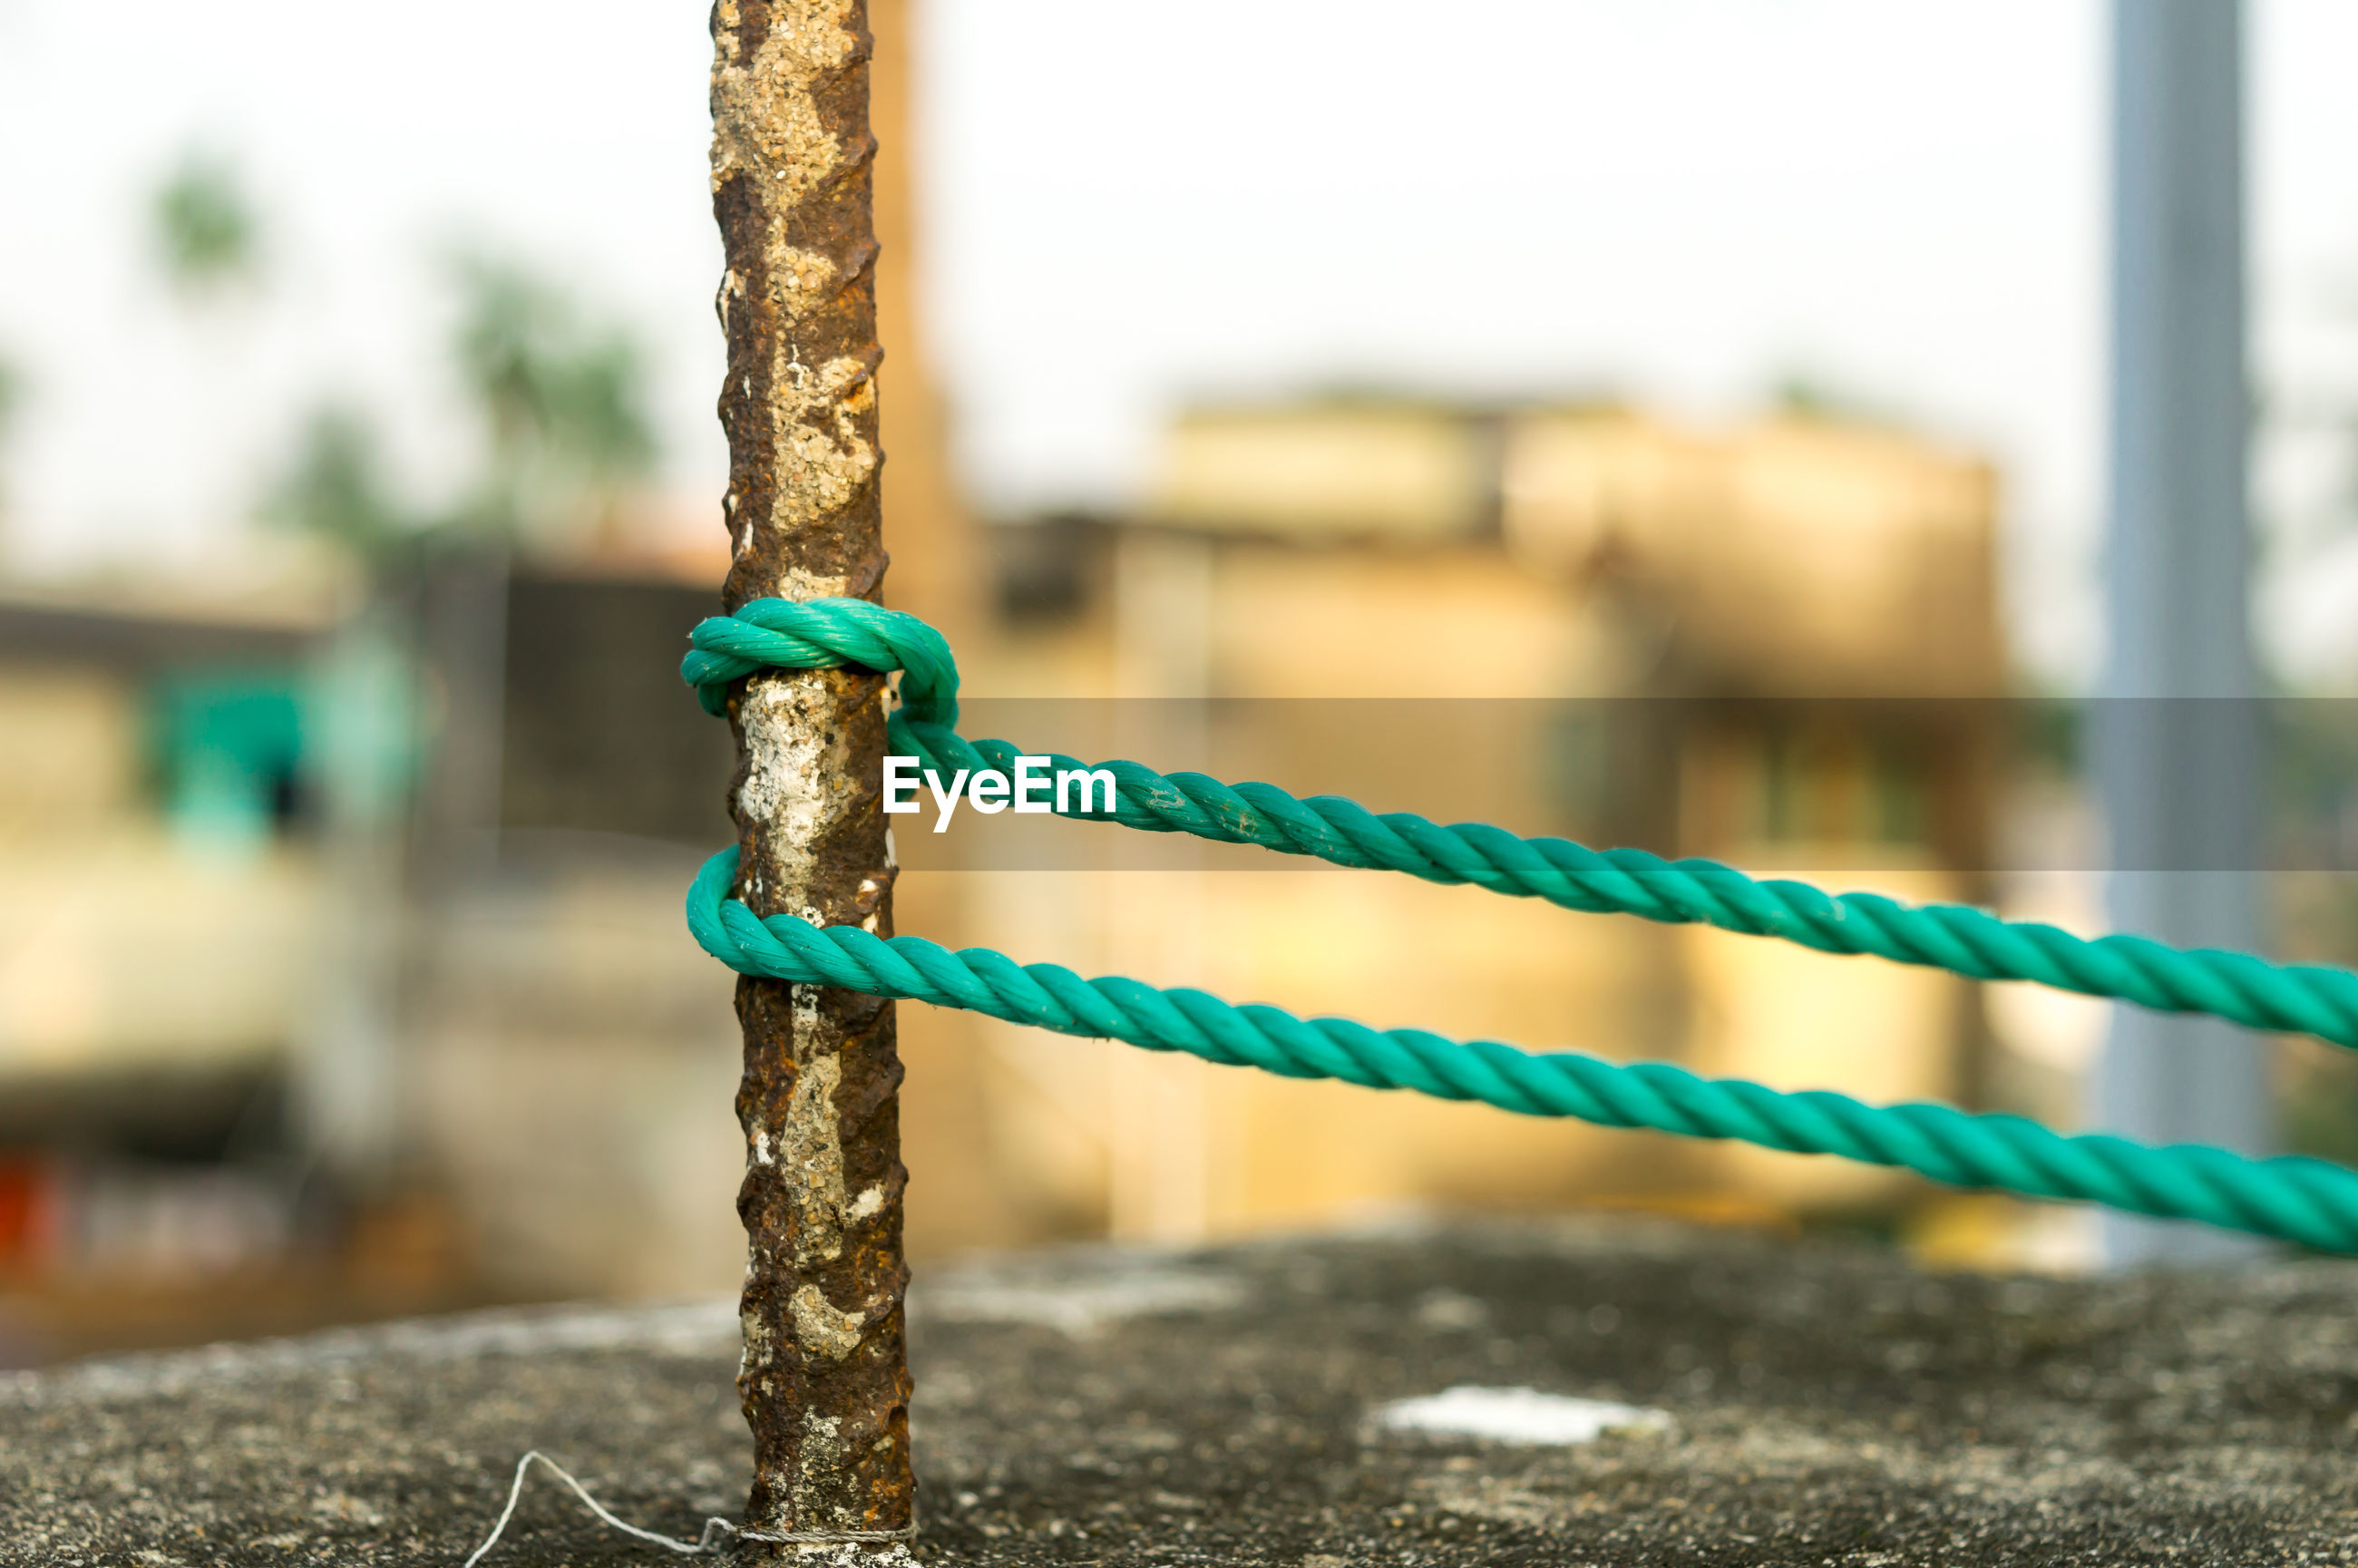 CLOSE-UP OF ROPE TIED UP ON METAL POLE